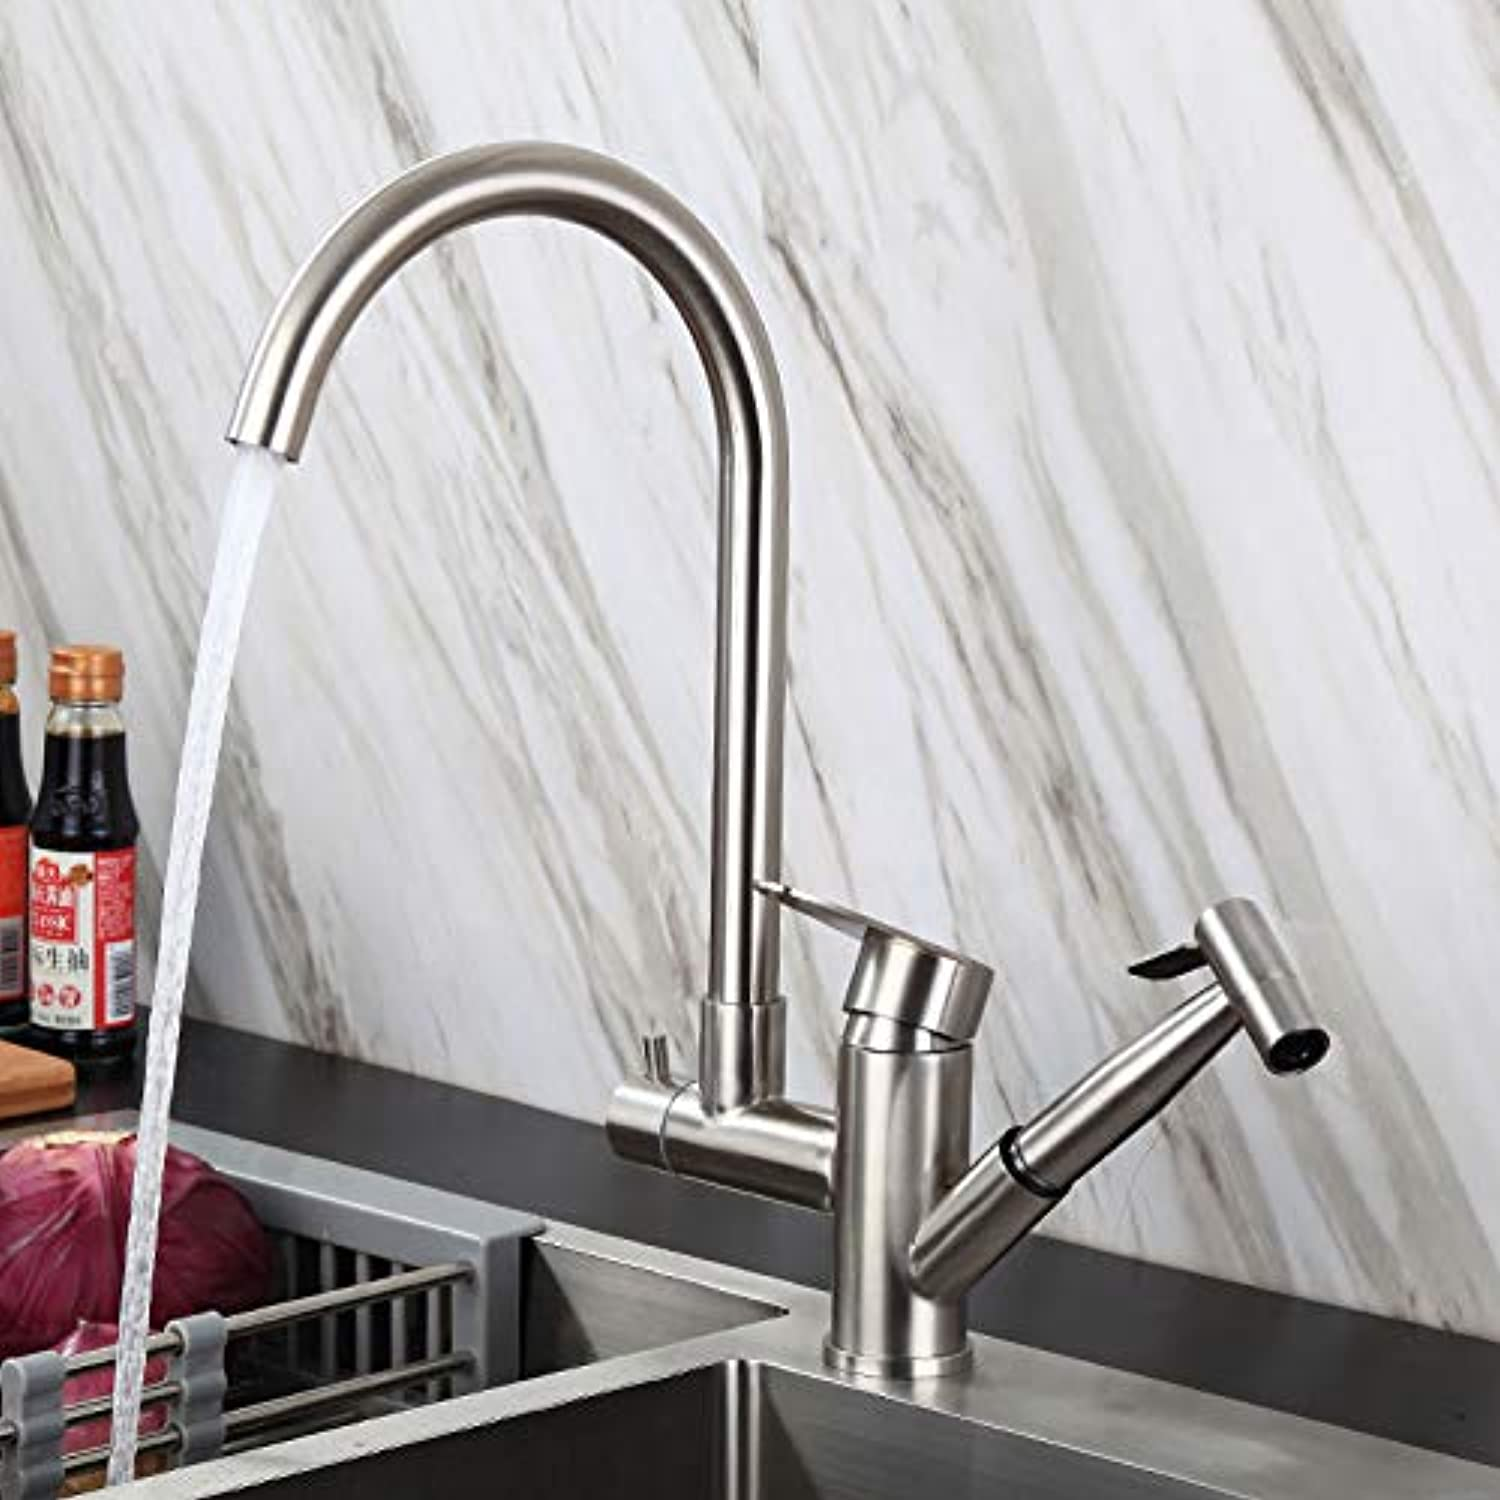 304 Stainless Steel Mesh Red Multi-Function Kitchen Faucet Pull Type Hot and Cold Sink Sink Retractable Faucet Round Robot